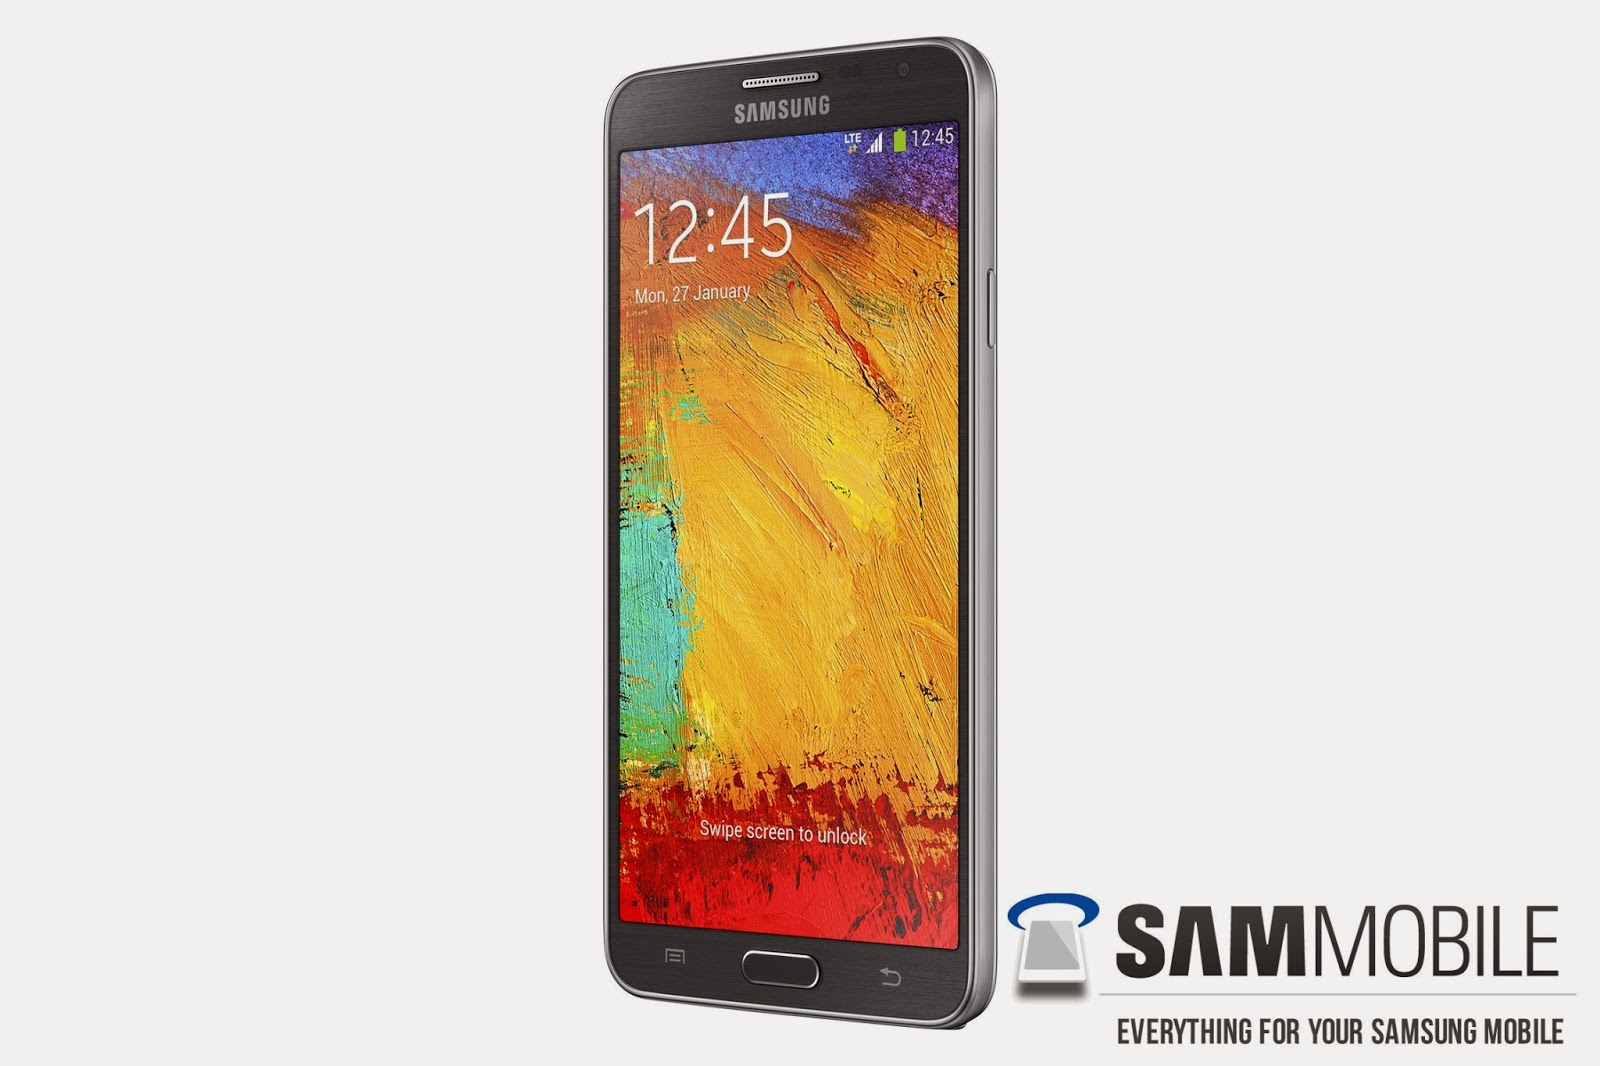 Samsung Galaxy Note 3 Neo press images leaked